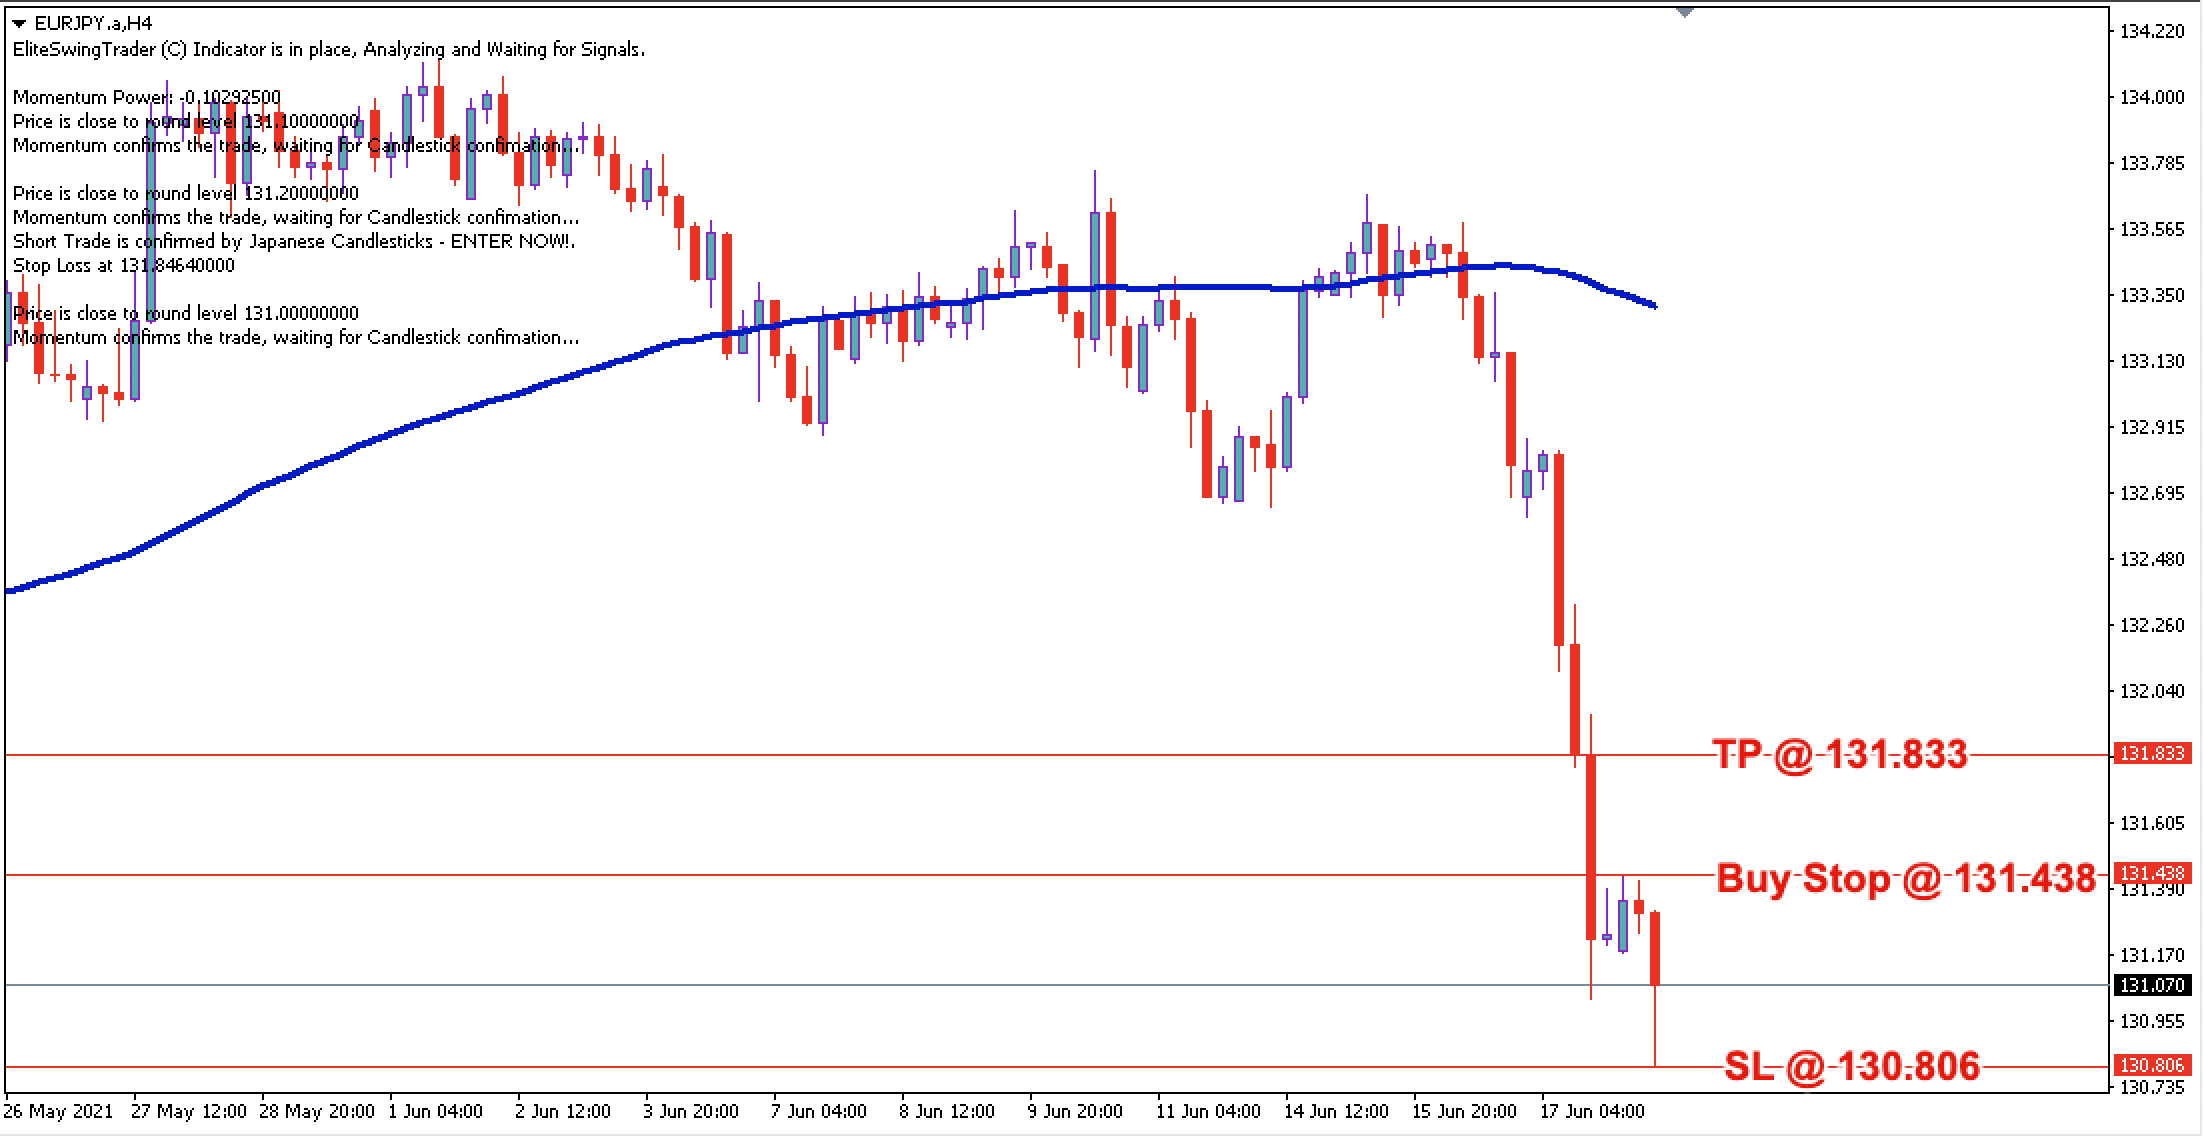 EUR/JPY Daily Price Forecast – 18th June 2021